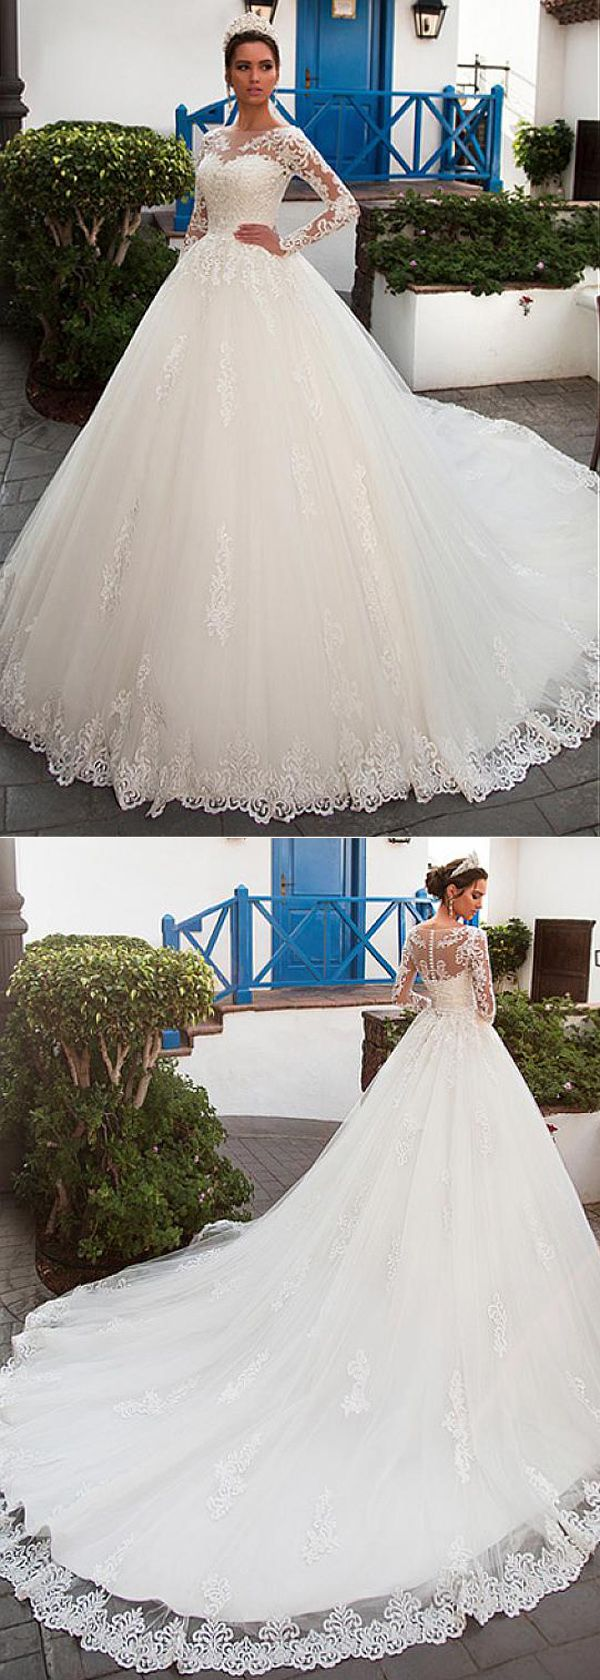 Gorgeous Tulle Bateau Neckline Ball Gown Wedding Dress With Lace Appliques & Bea…